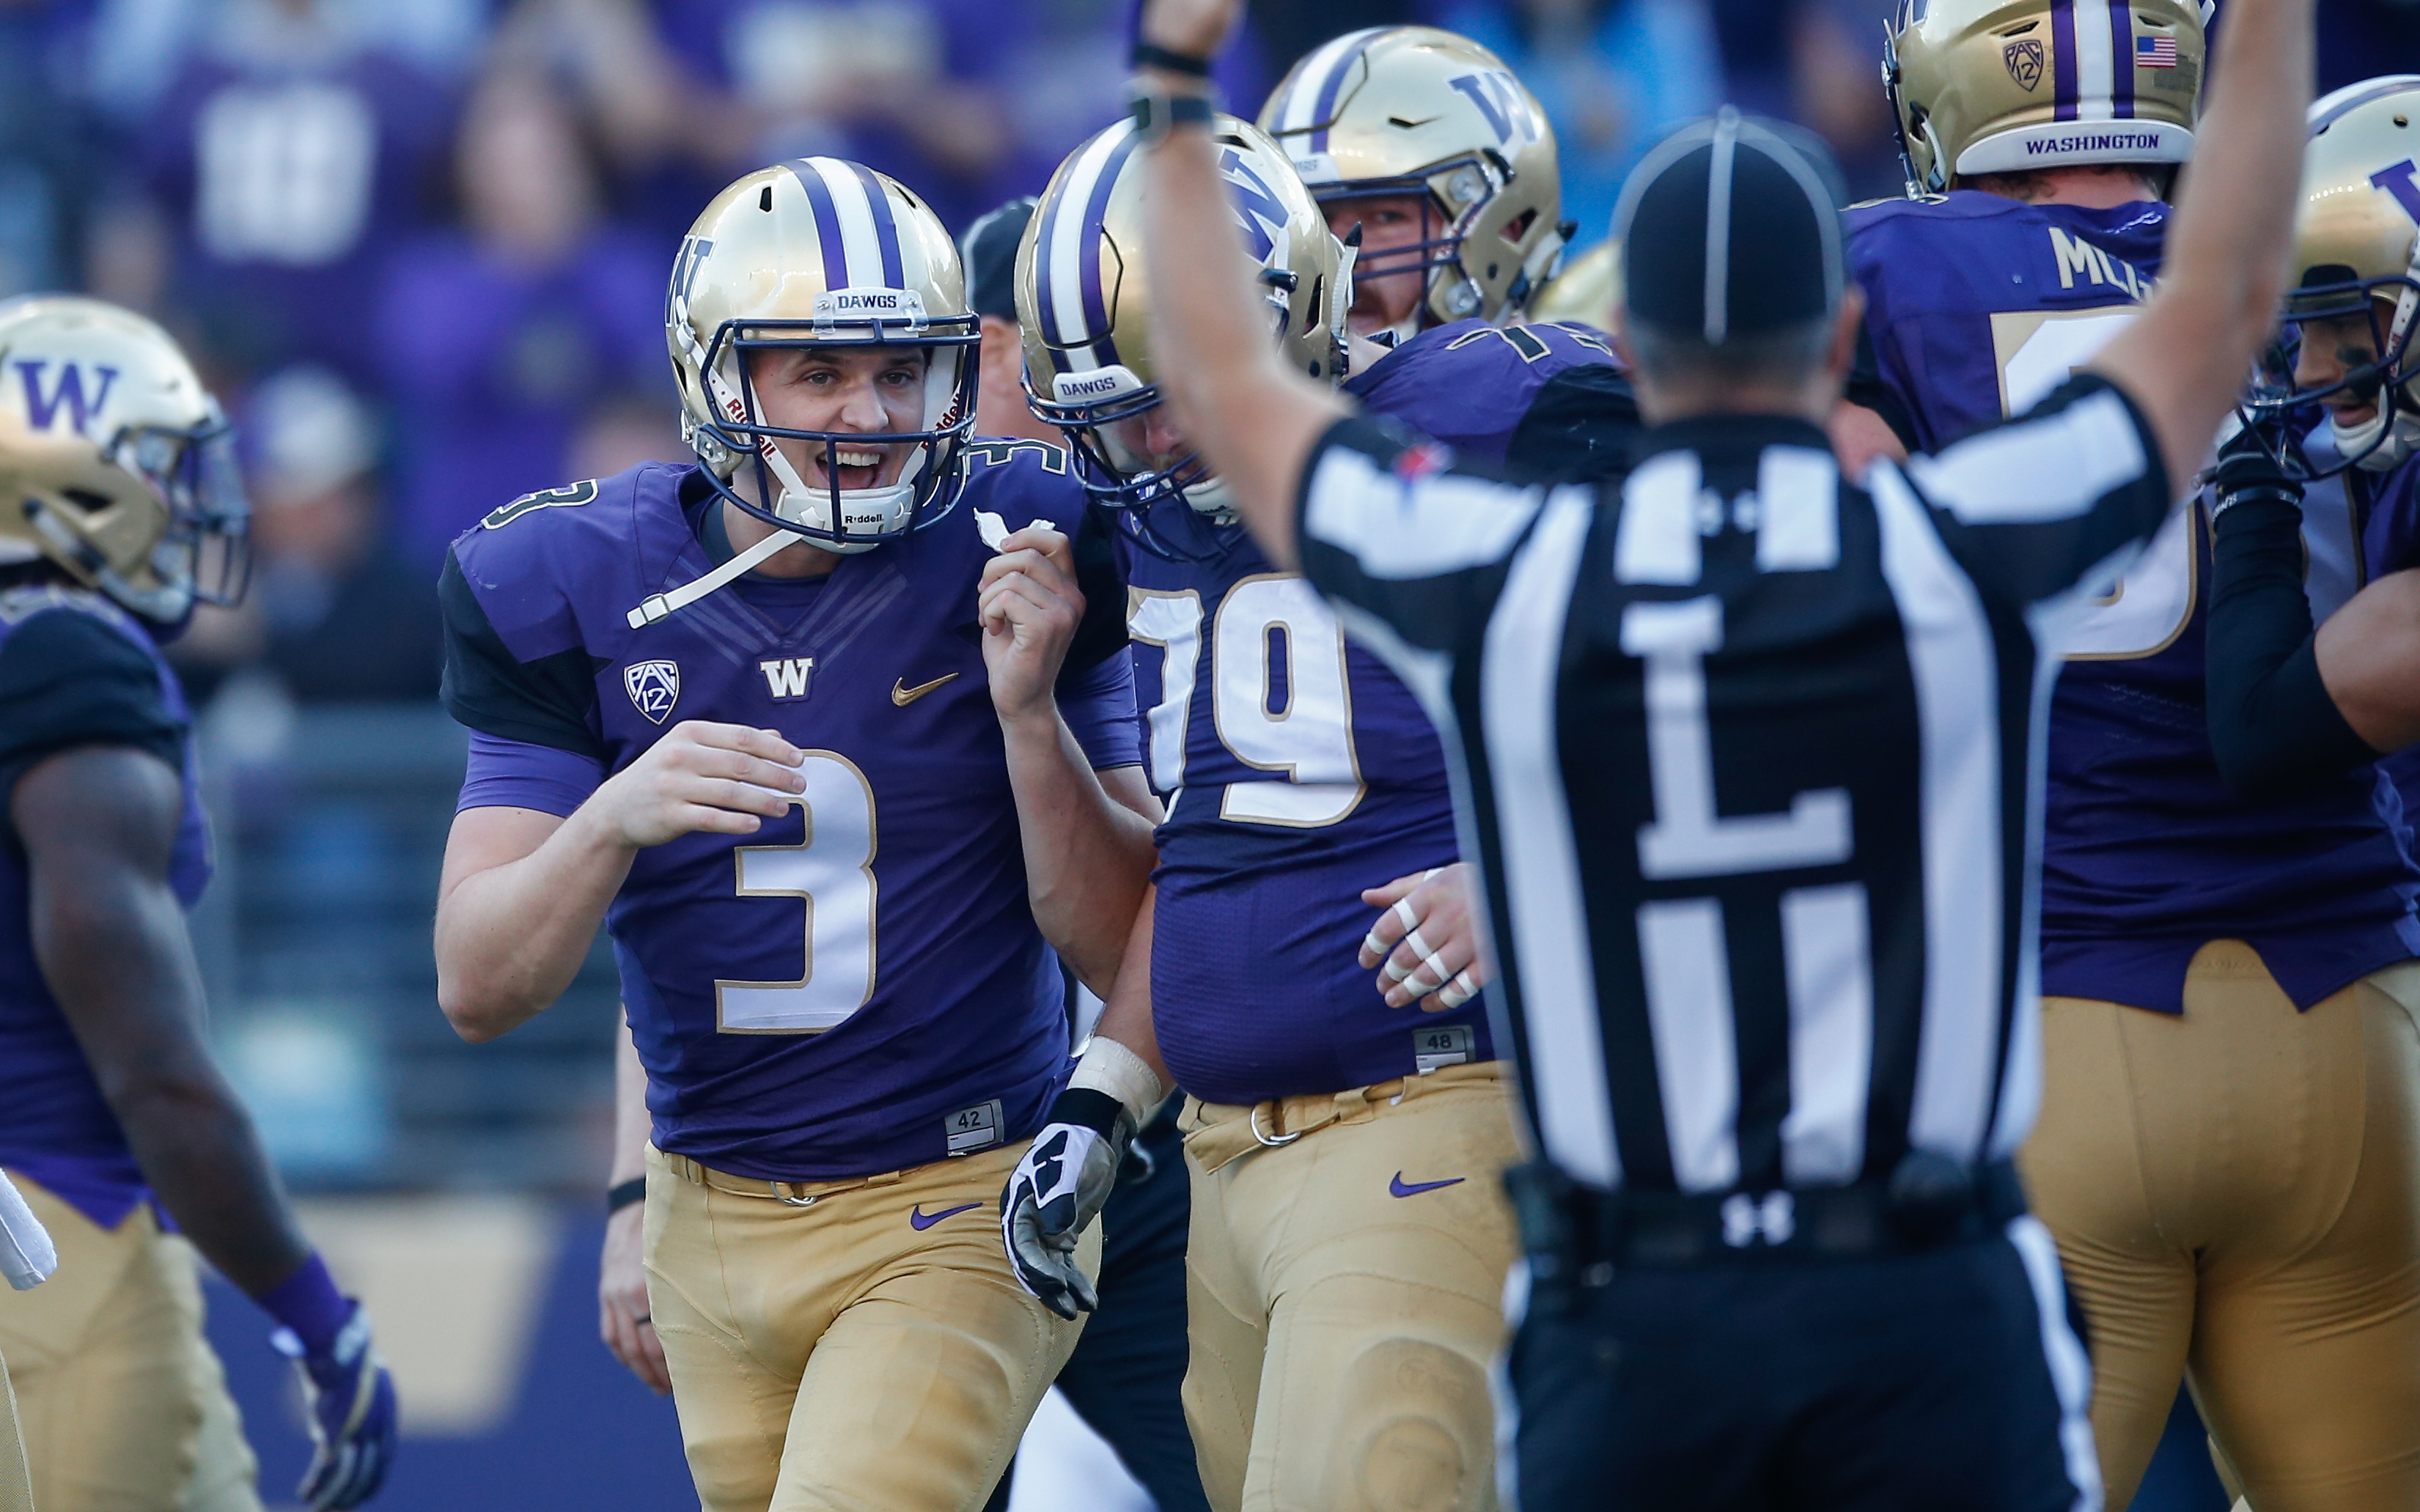 washington football huskies were snubbed from cfb playoff